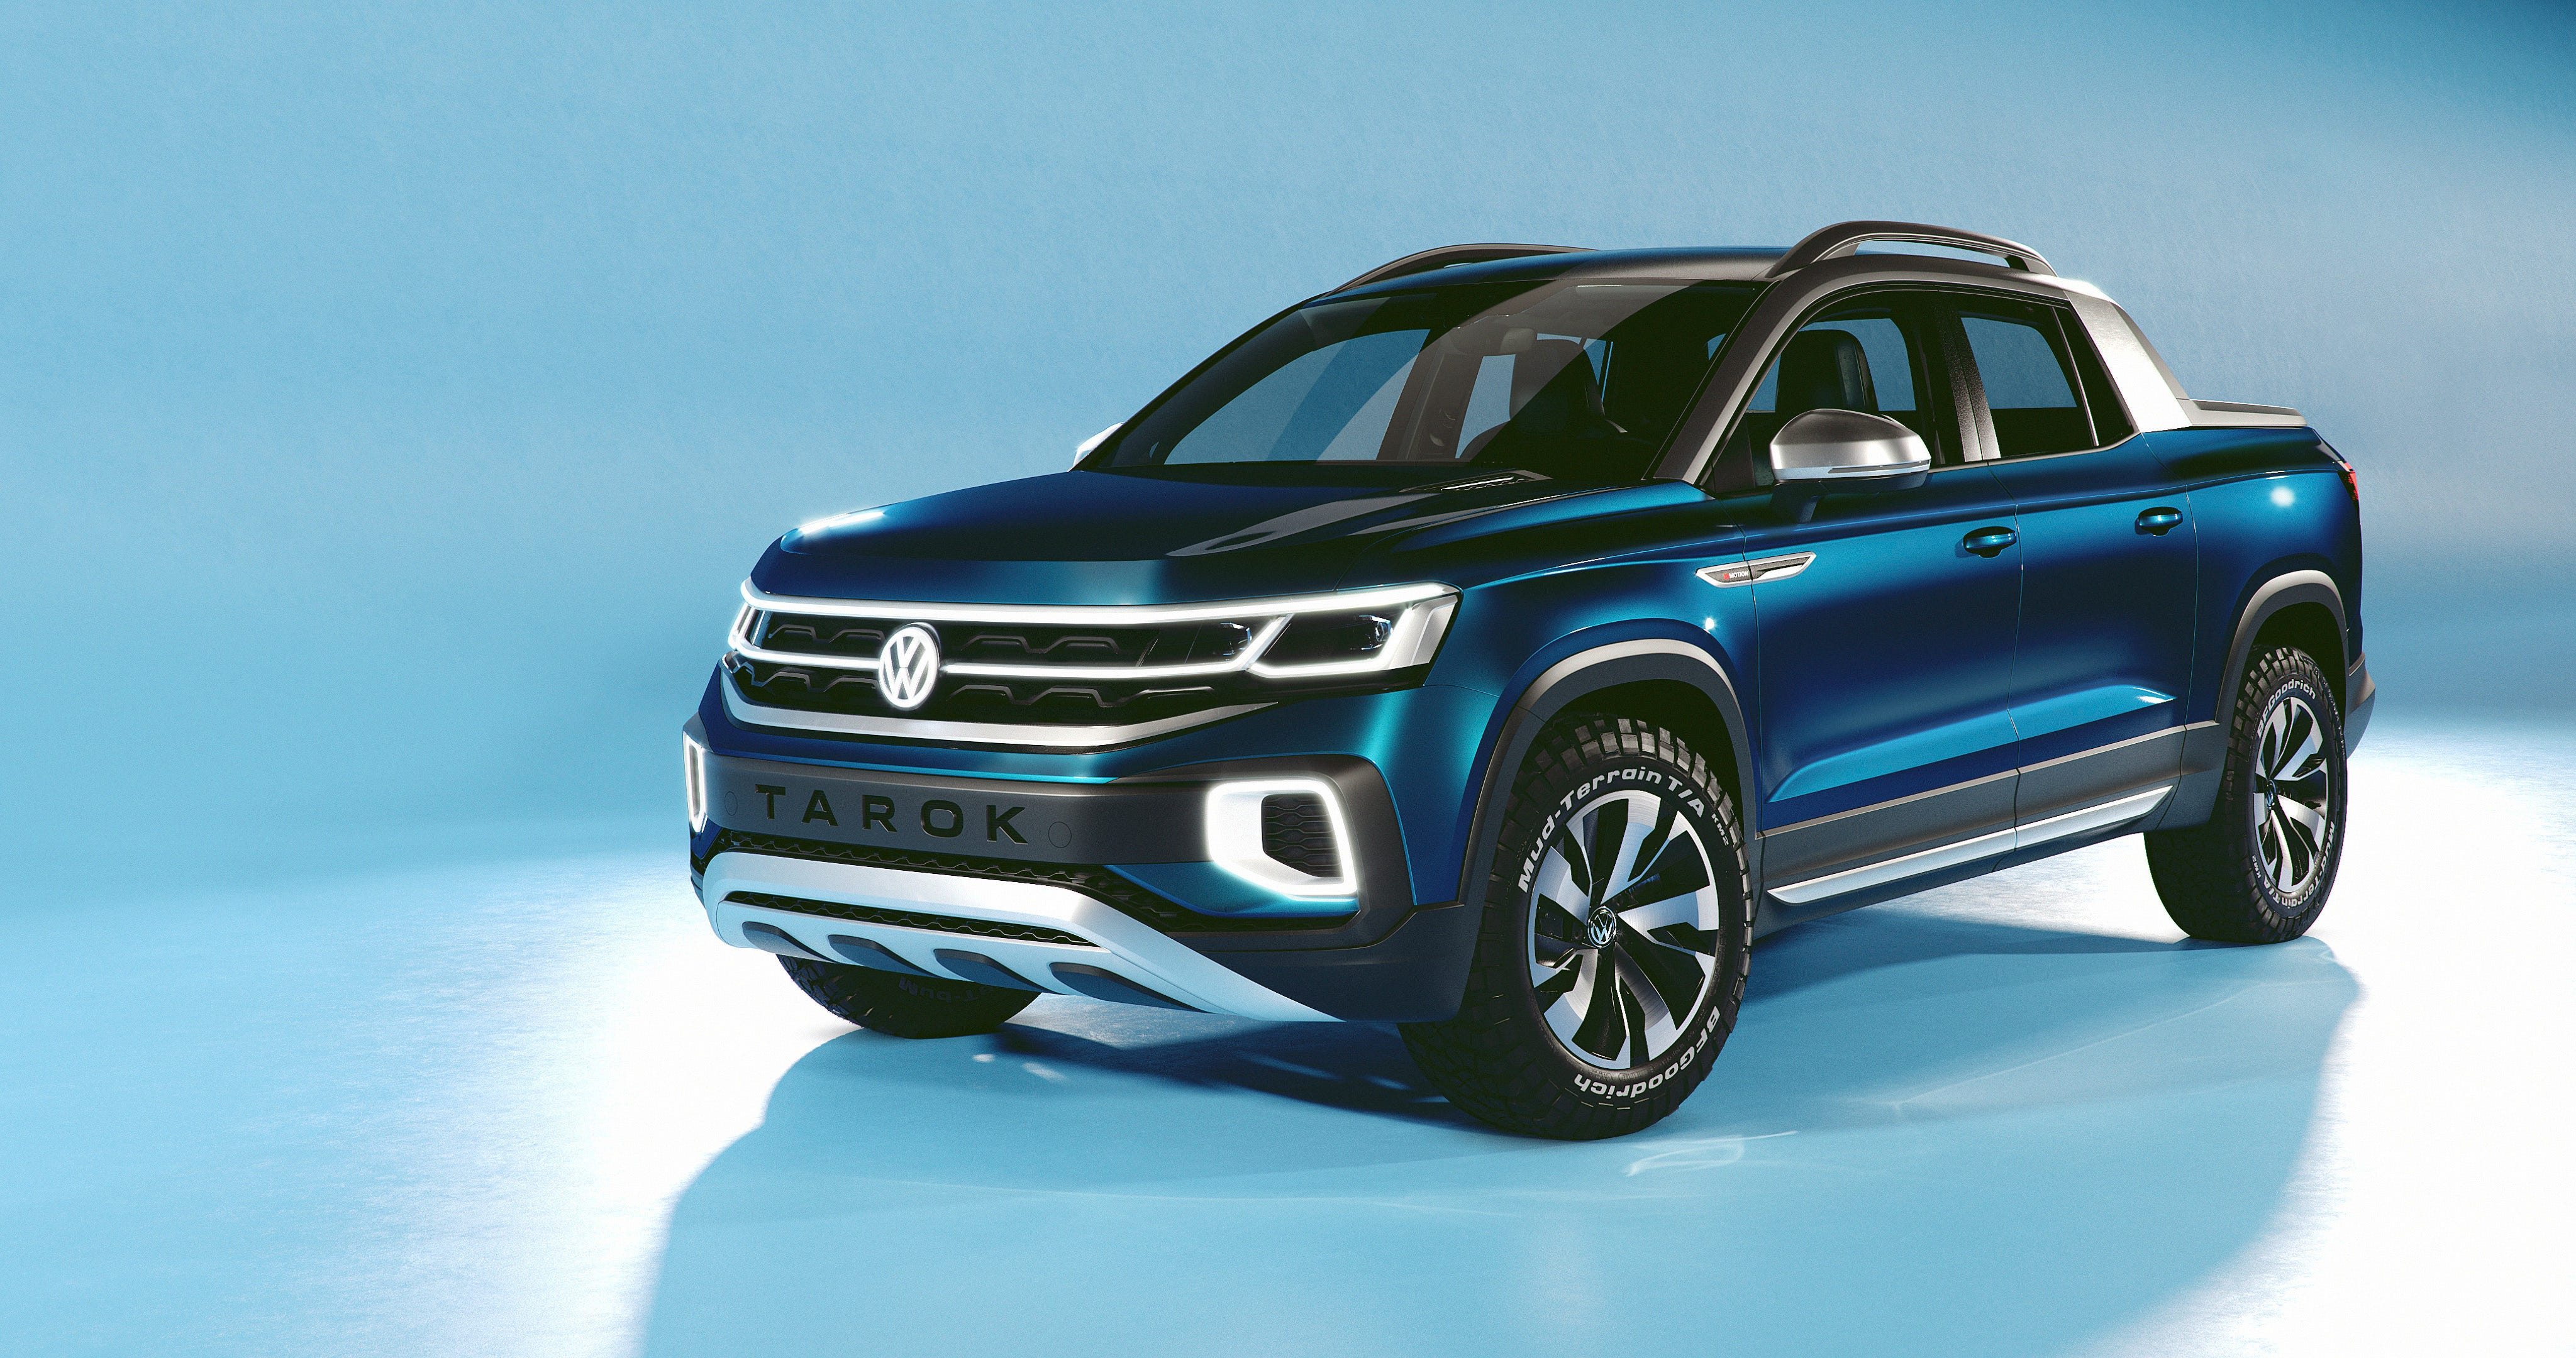 New York Auto Show: Volkswagen reveals compact pickup concept that may come to U.S.